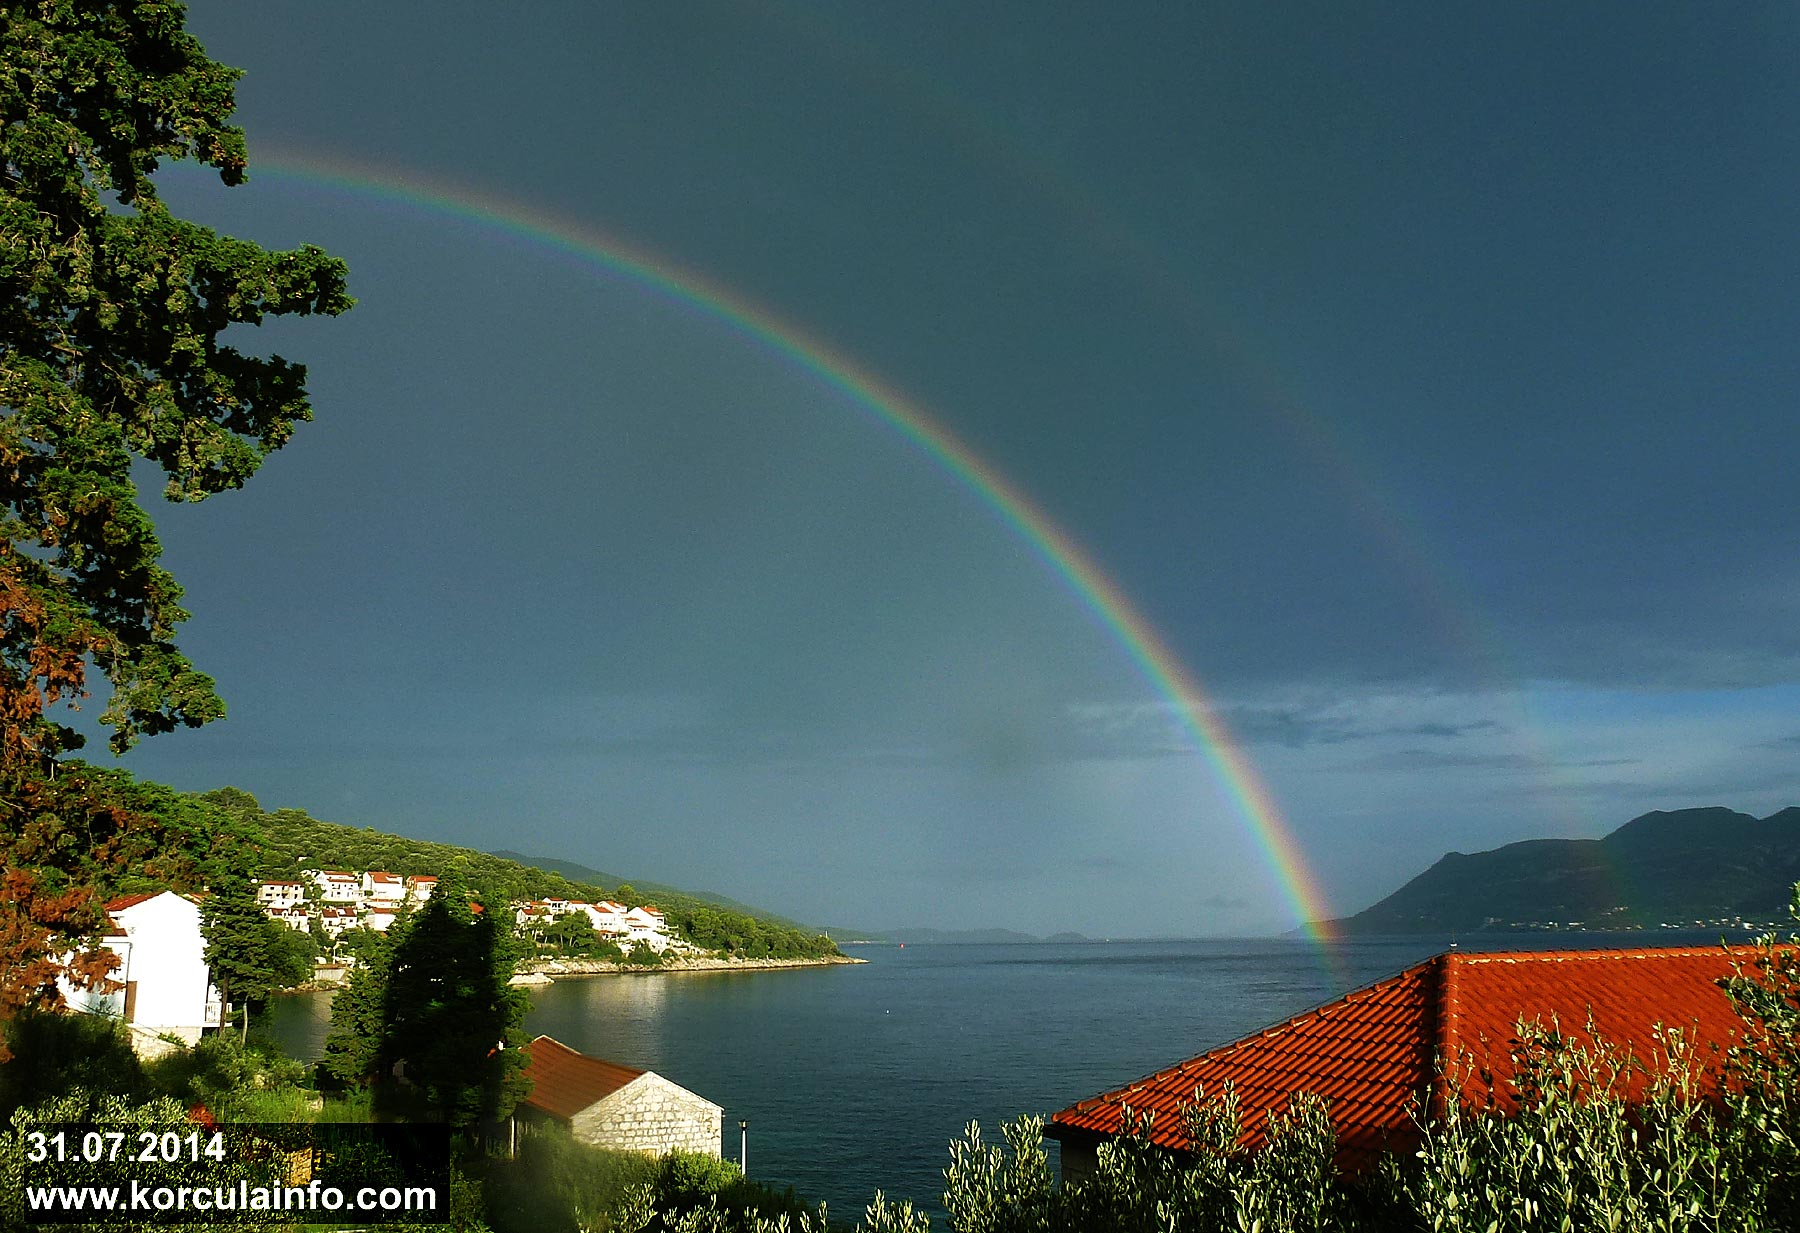 Rainbow in Sveti Nikola, Korcula (July 2014)